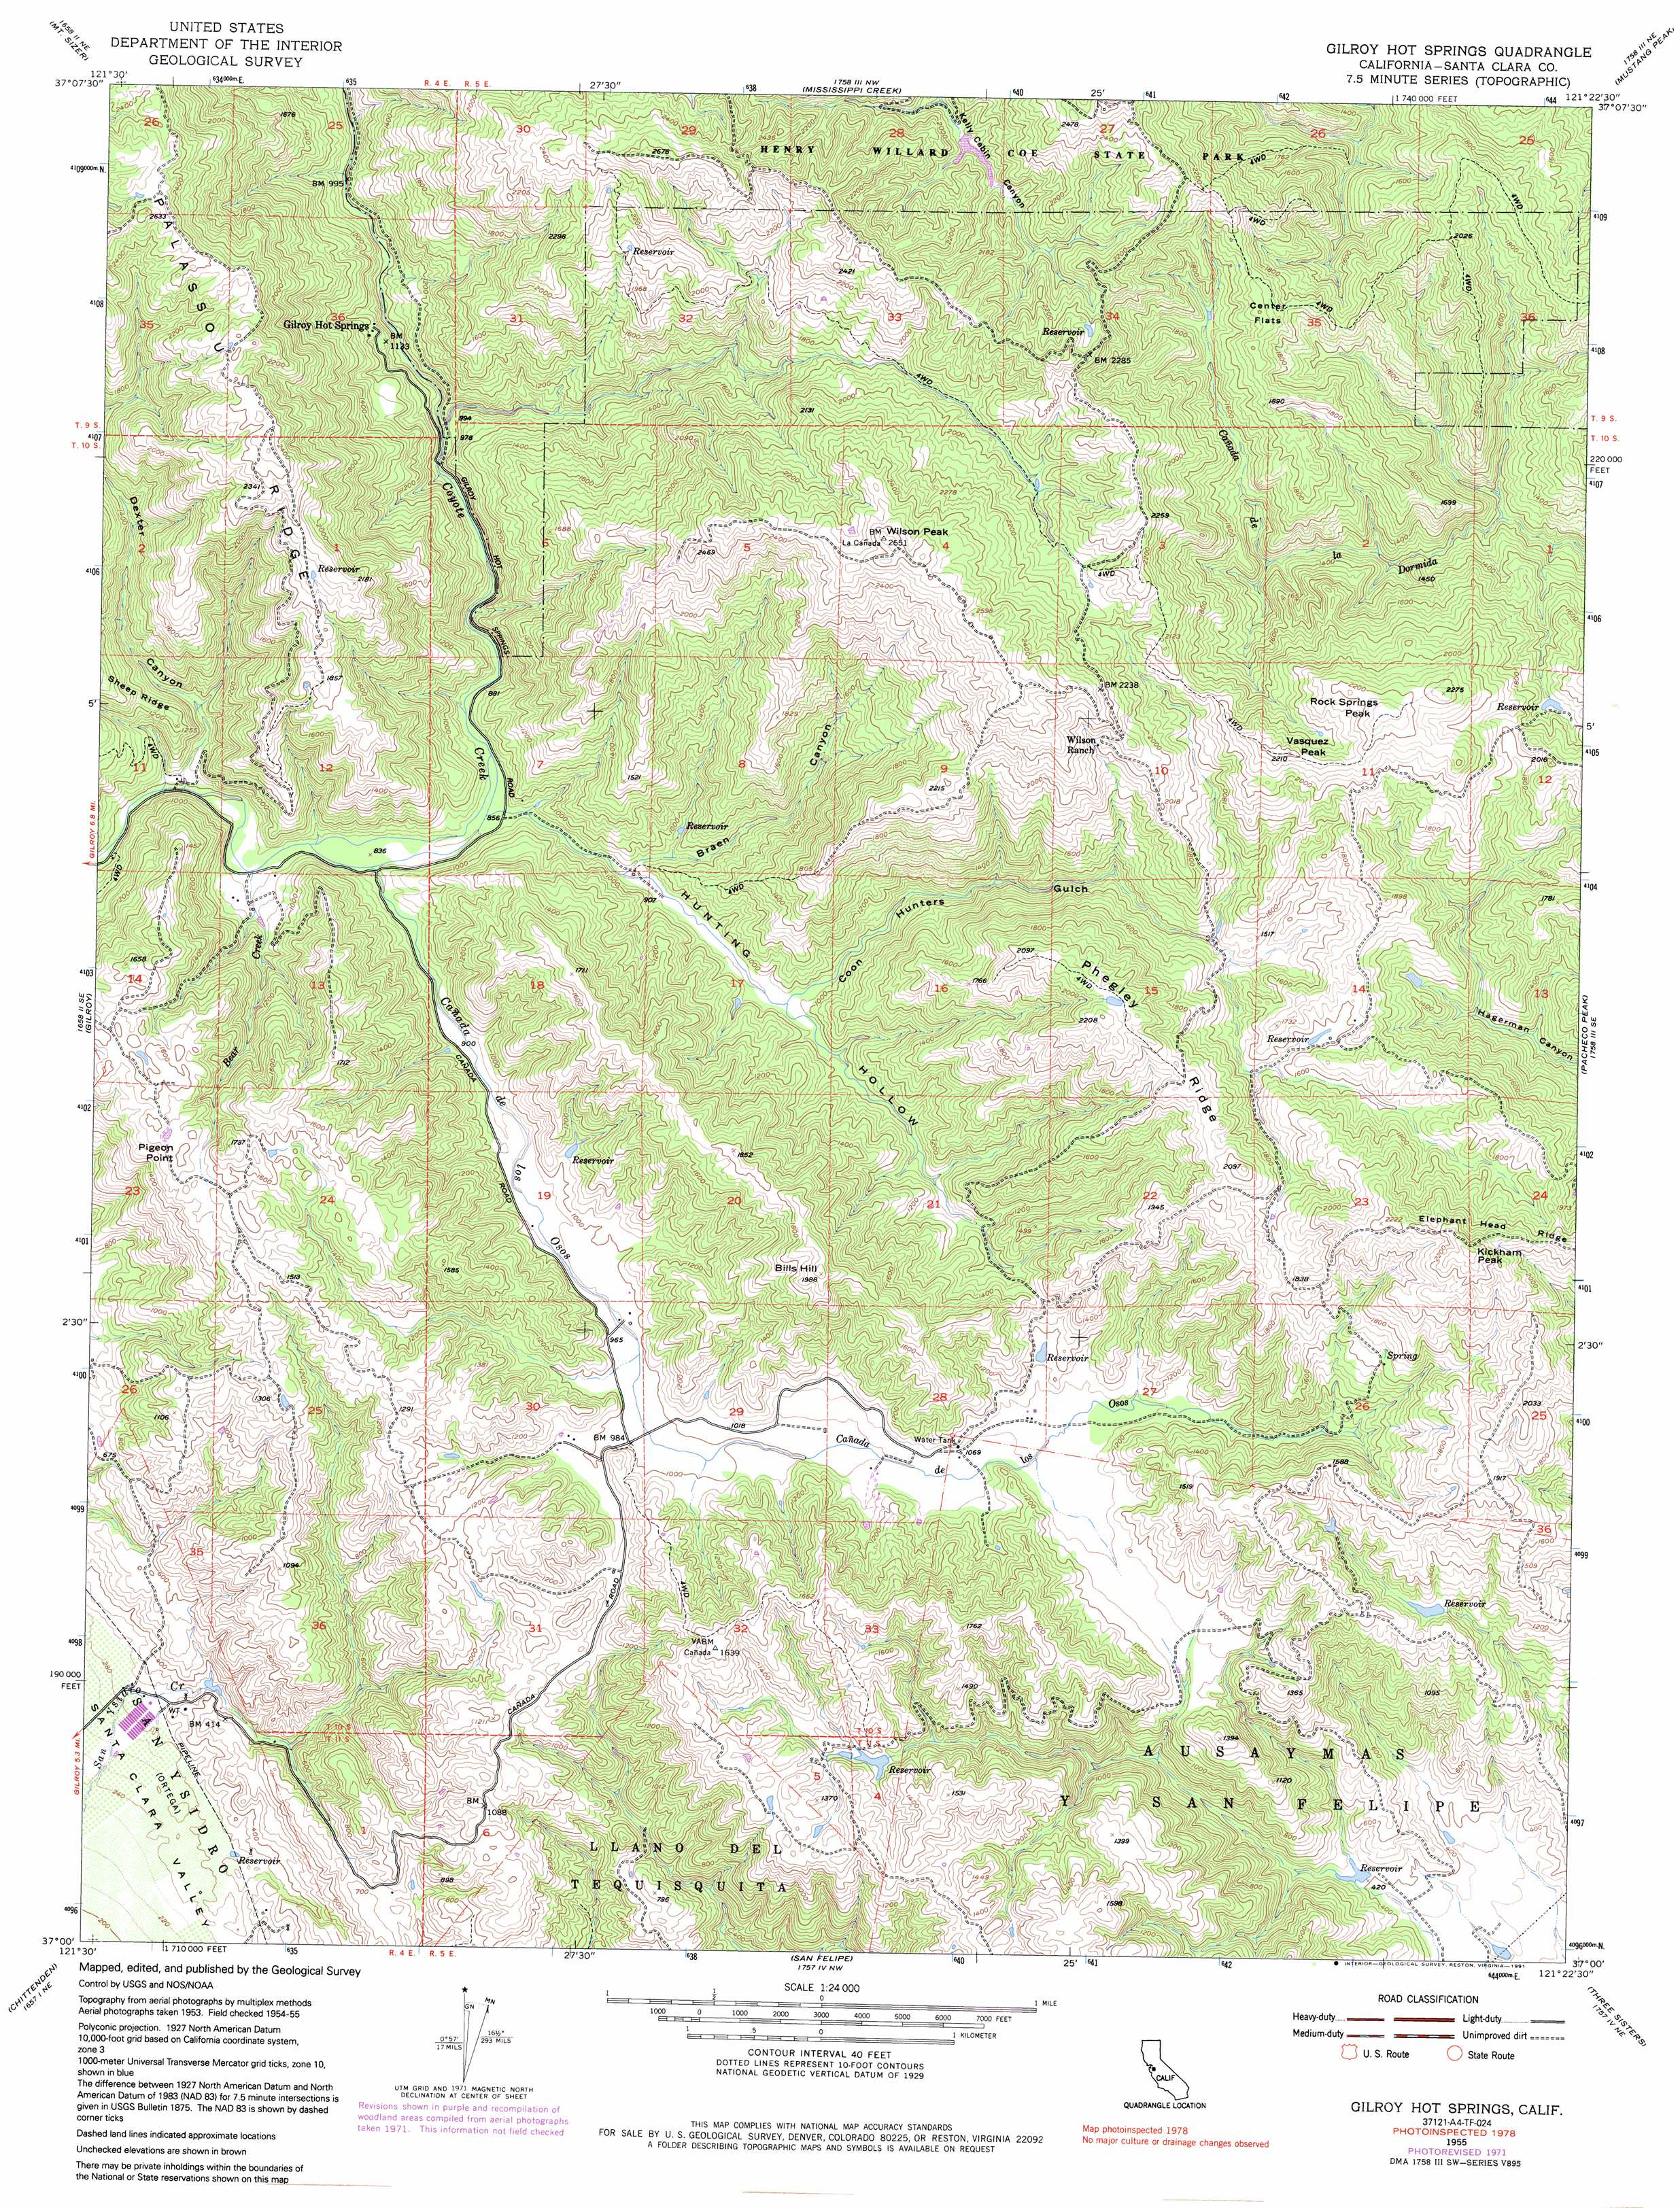 Gilroy Hot Springs topographic map CA USGS Topo Quad 37121a4